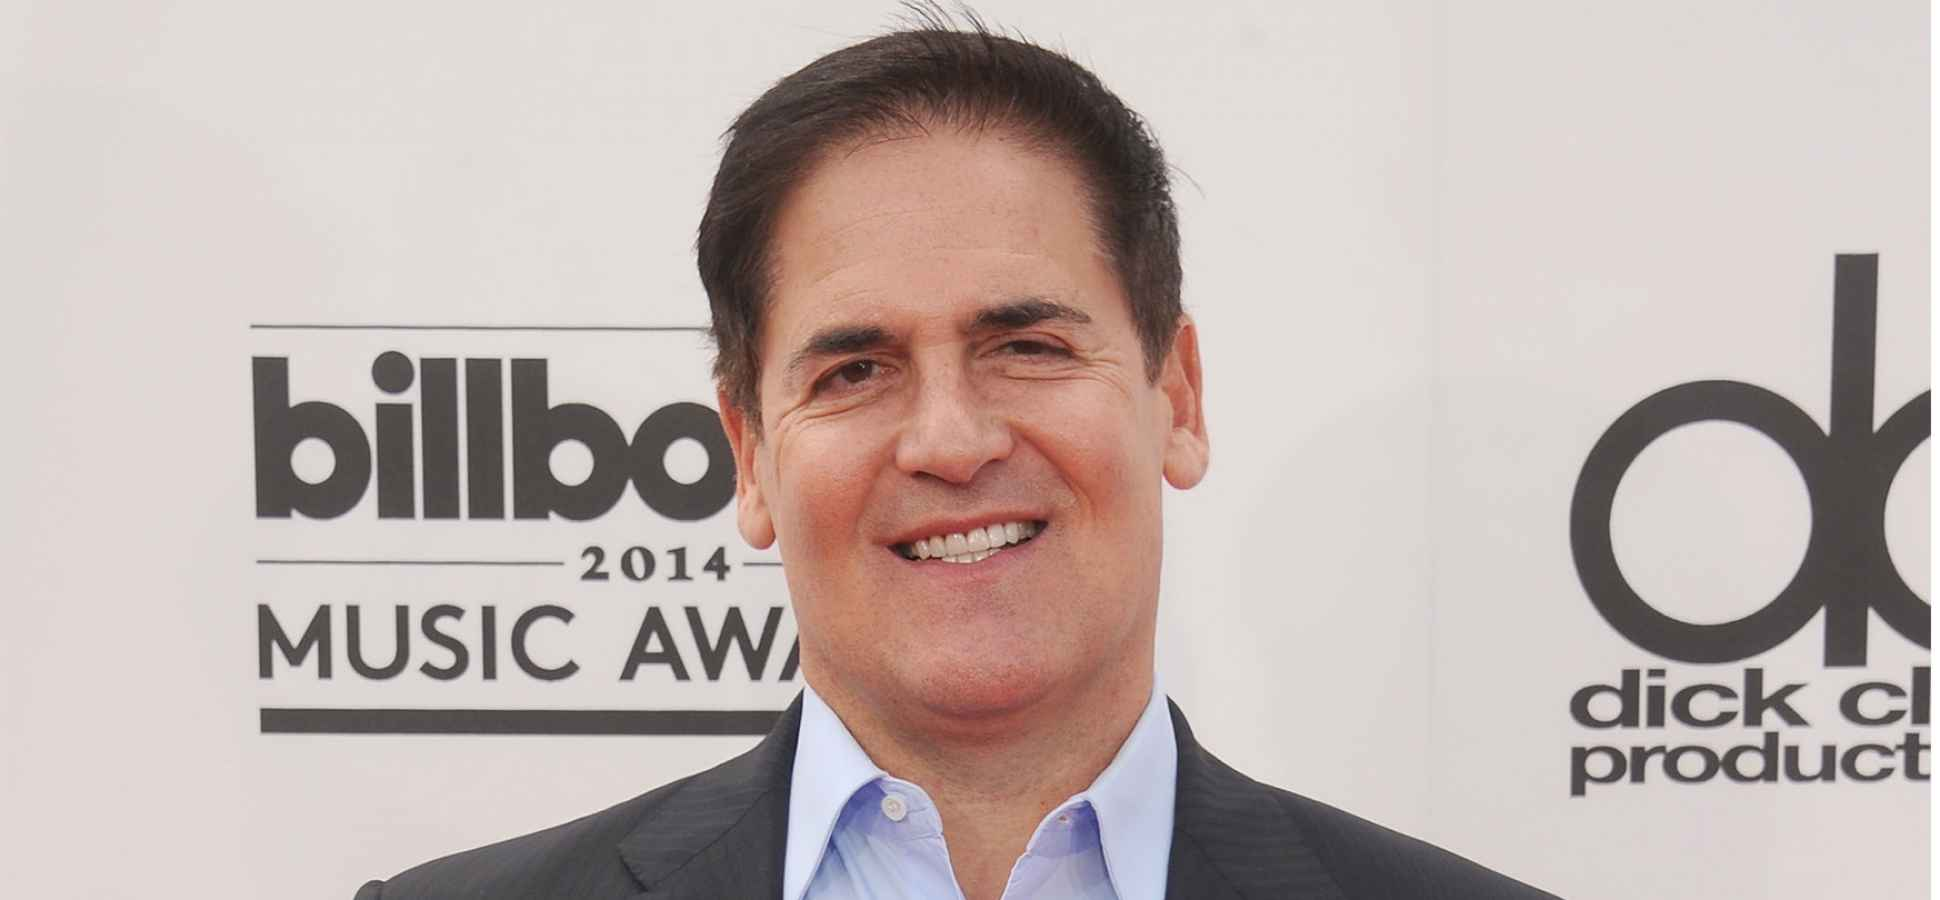 mark cuban twitter